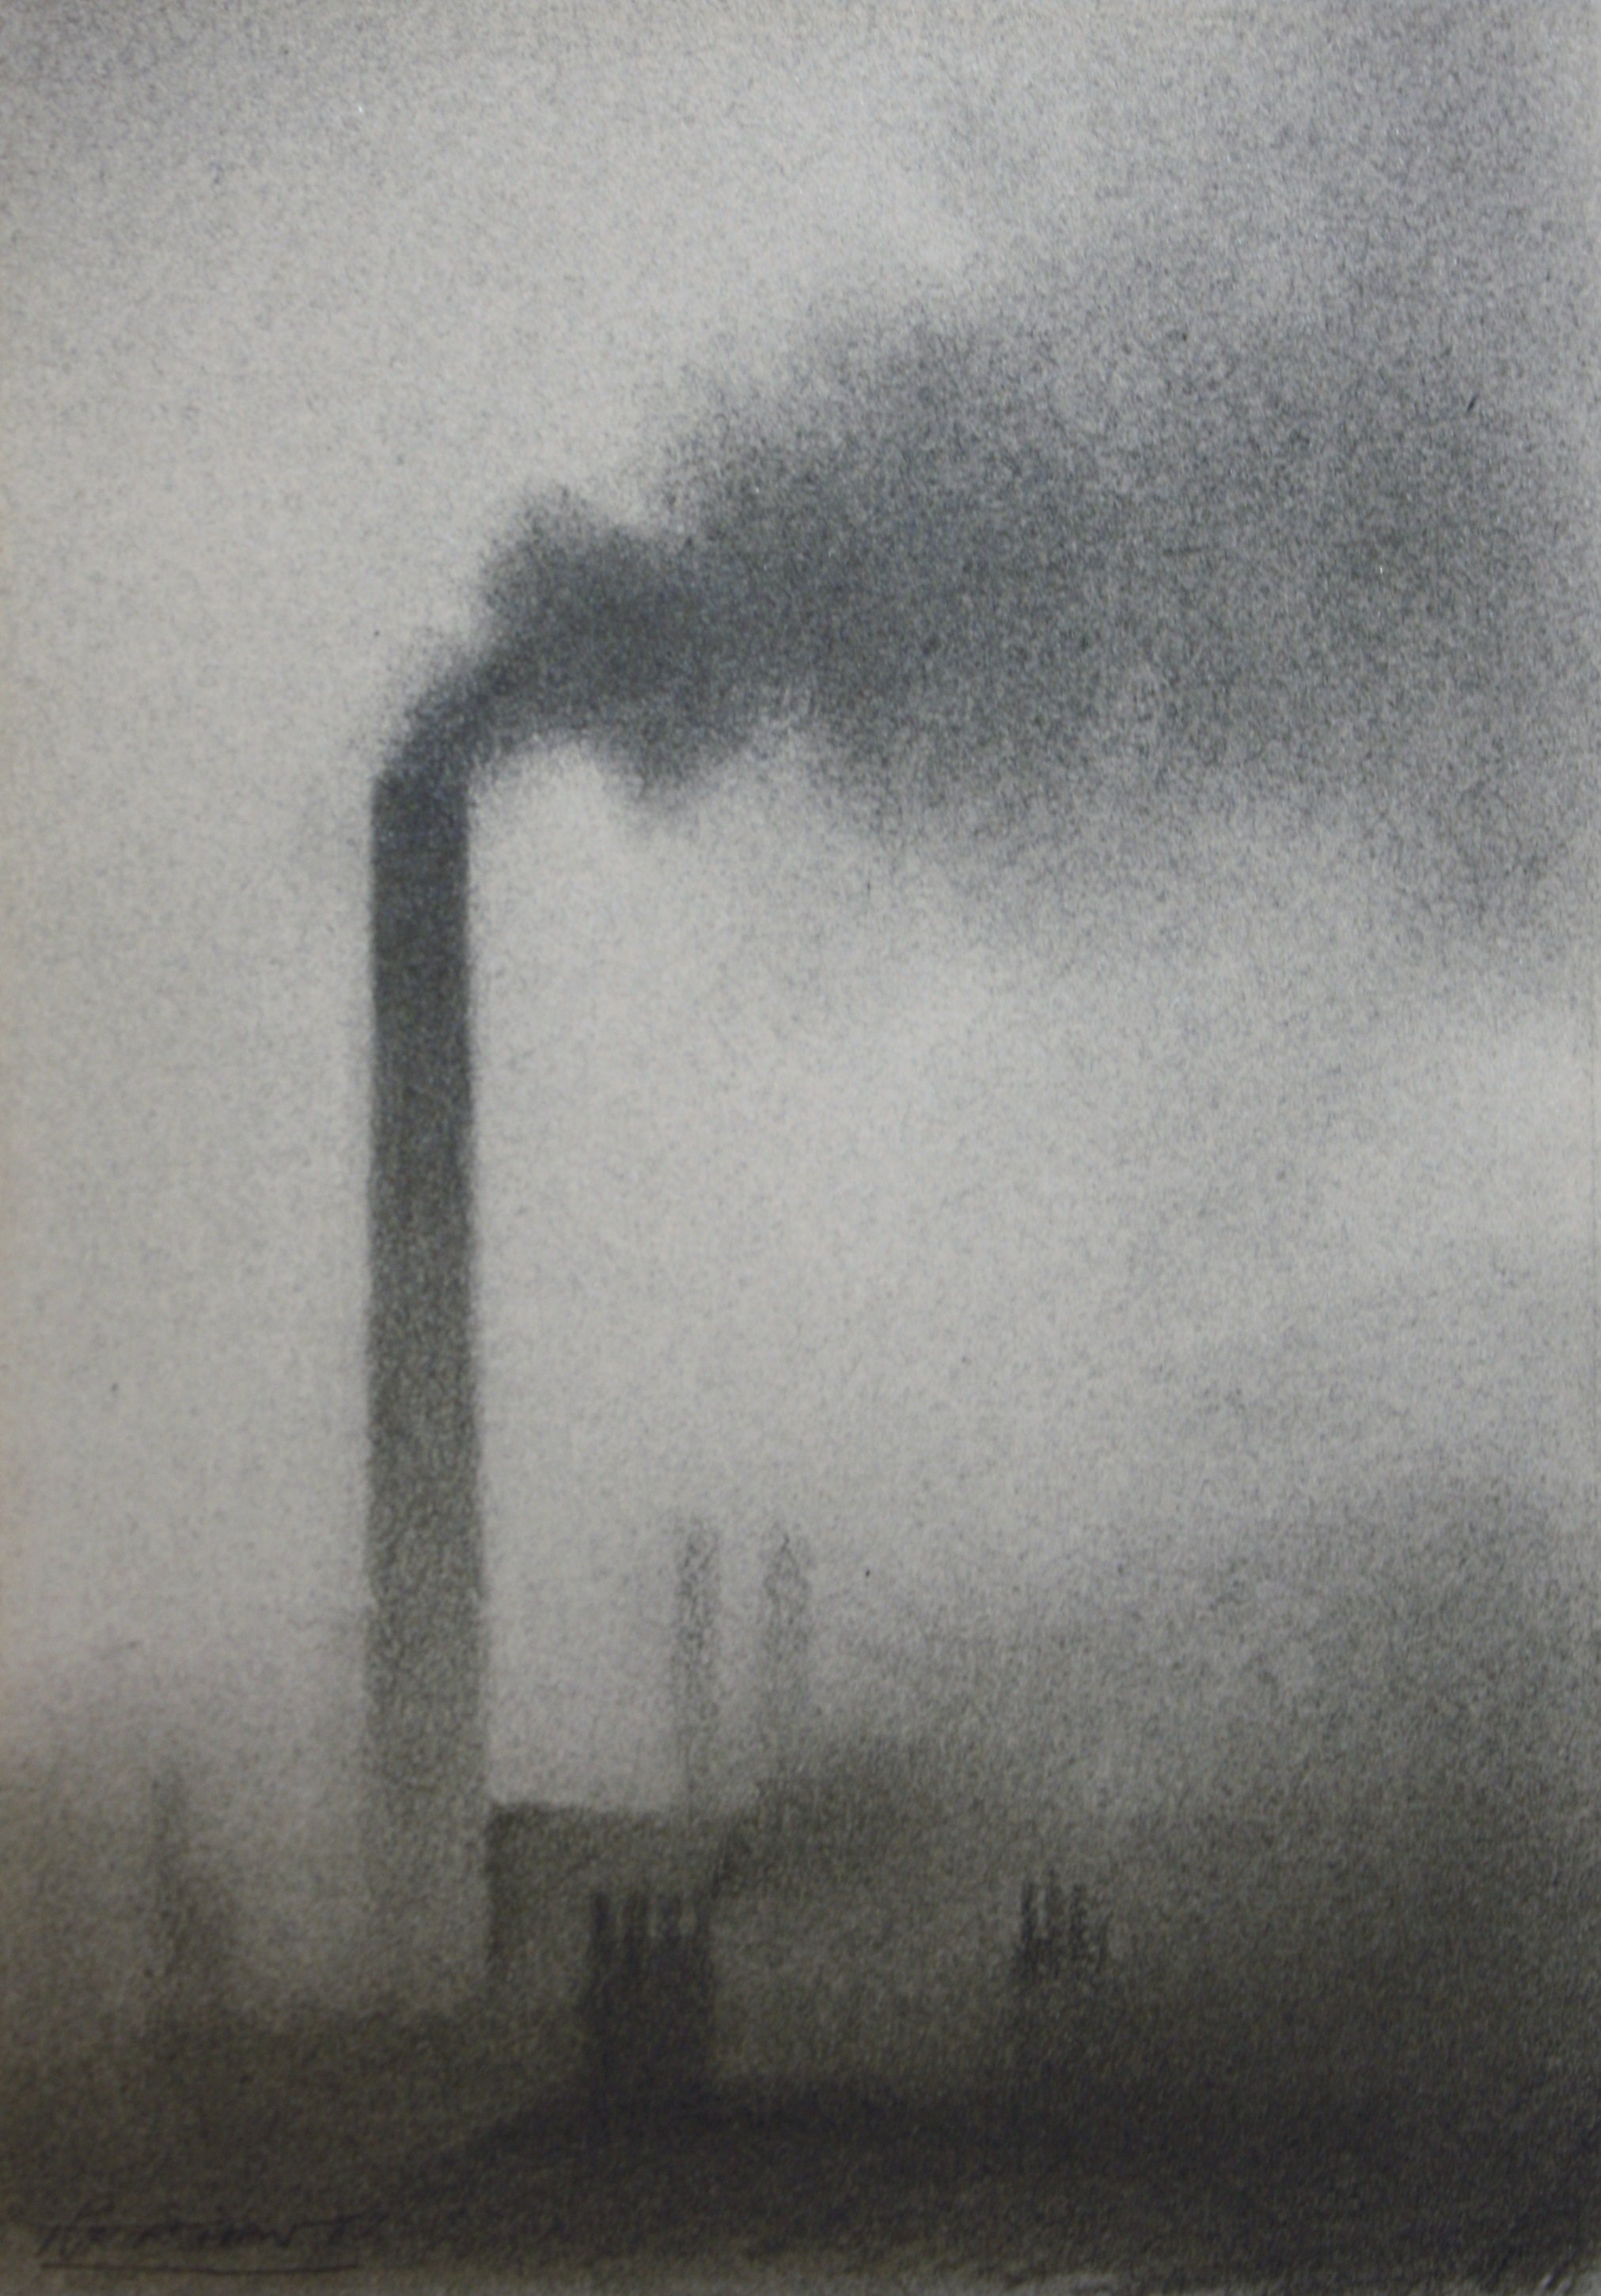 trevor grimshaw smoking chimney 7ins x 5ins pencil 1675